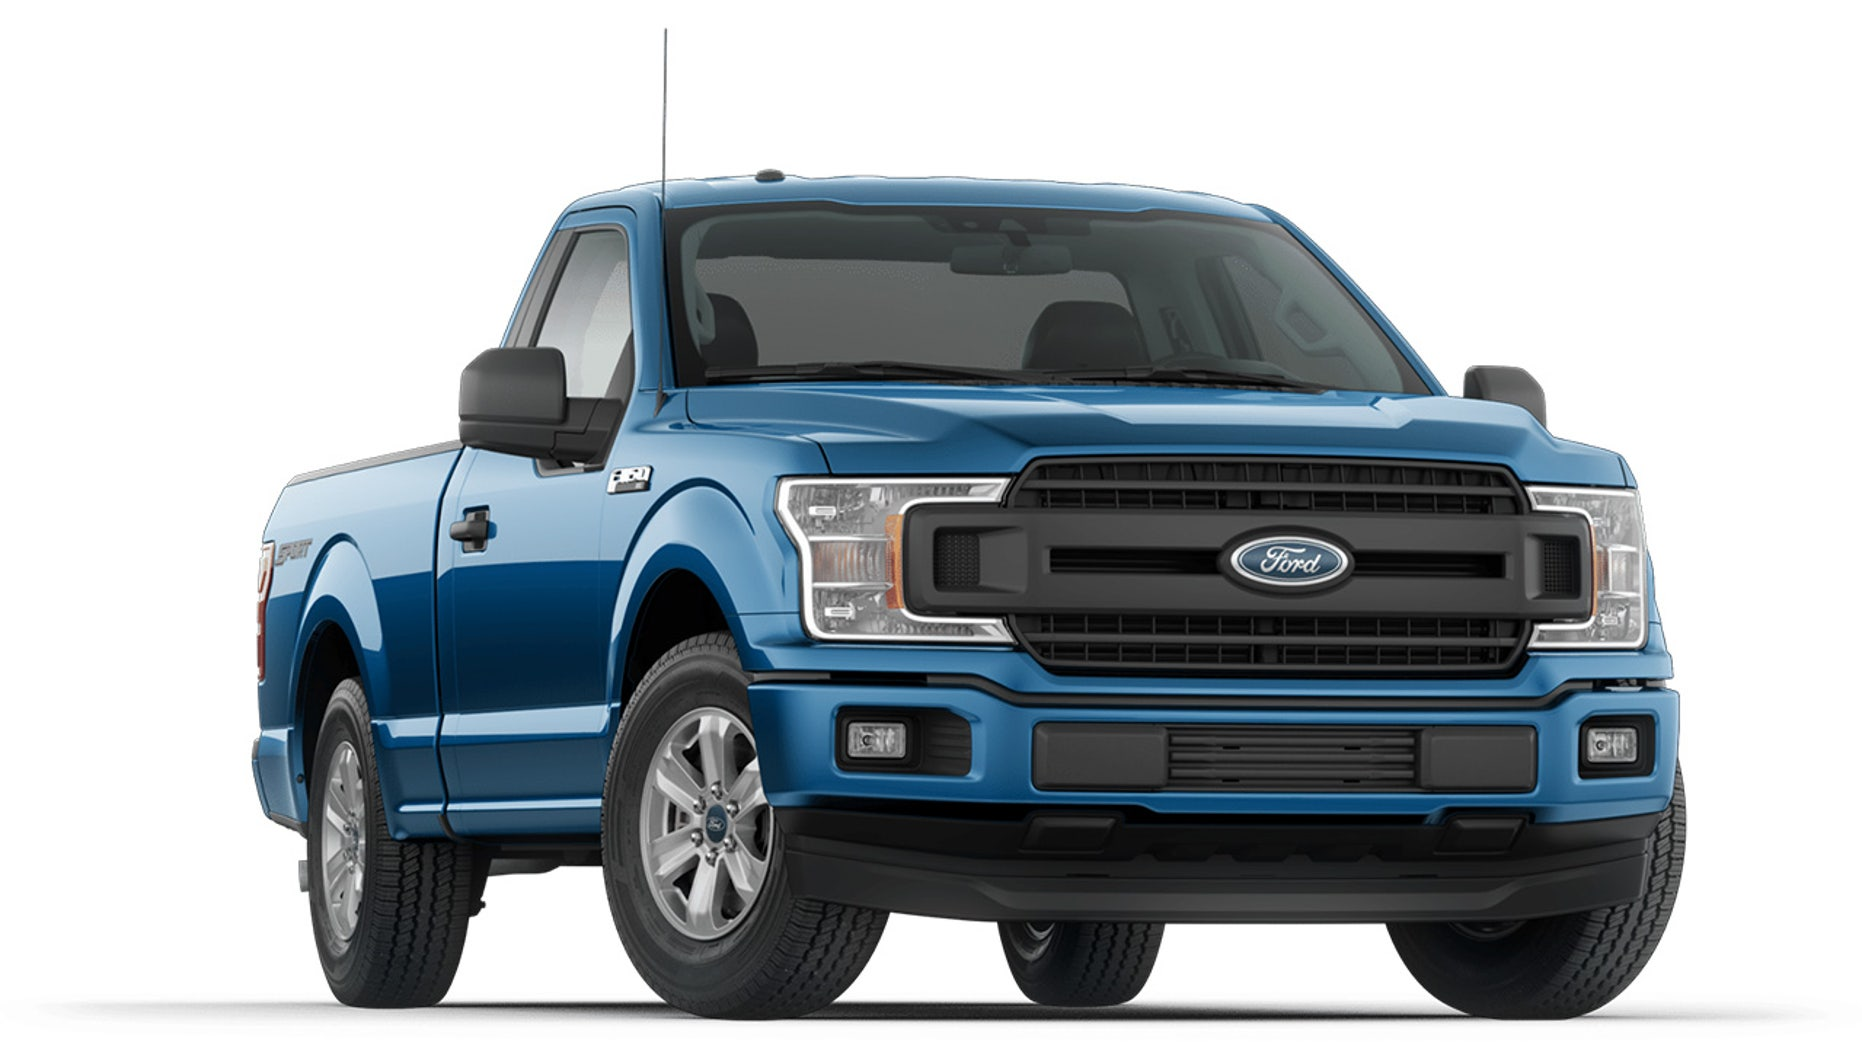 The price includes 2WD F-150 Regular Cab XT Sport like this one in Velocity Blue.